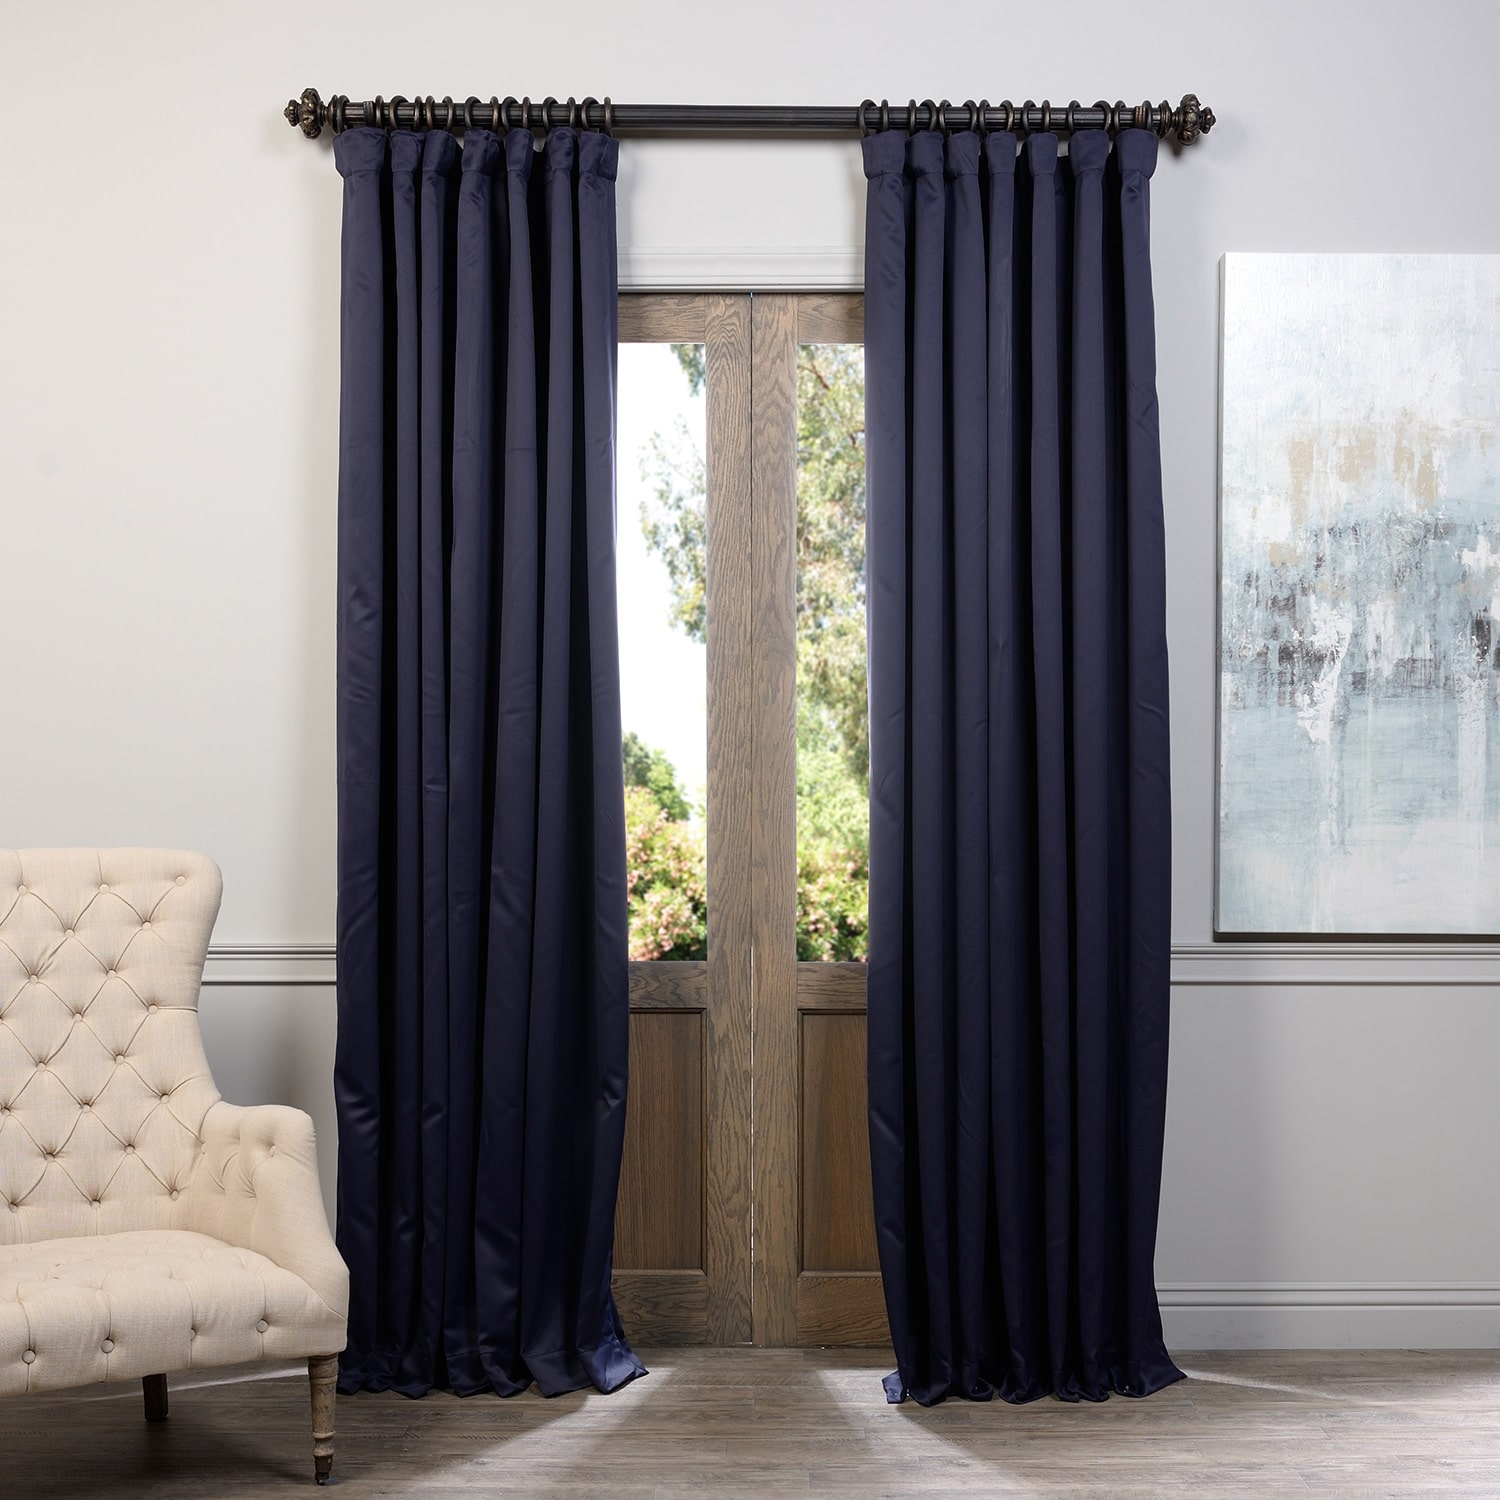 Lofty Inspiration Blackout Curtains 108 Inches Blackout Curtains In Extra Long Thermal Curtains (Image 11 of 15)